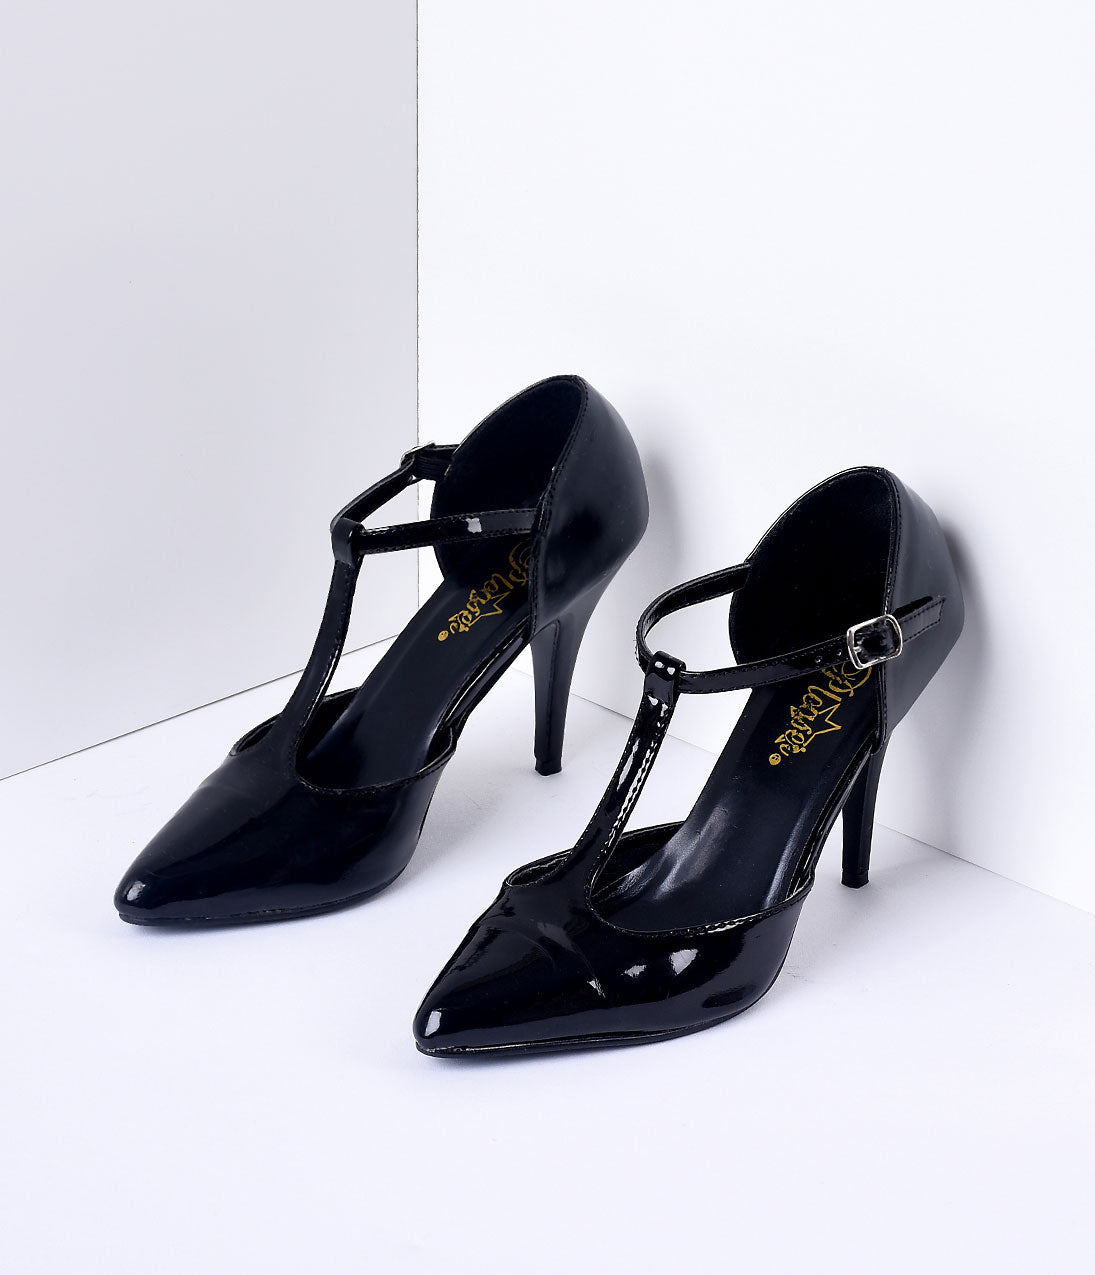 1950s Style Clothing & Fashion 1920S Style Black T-Strap Heels $68.00 AT vintagedancer.com